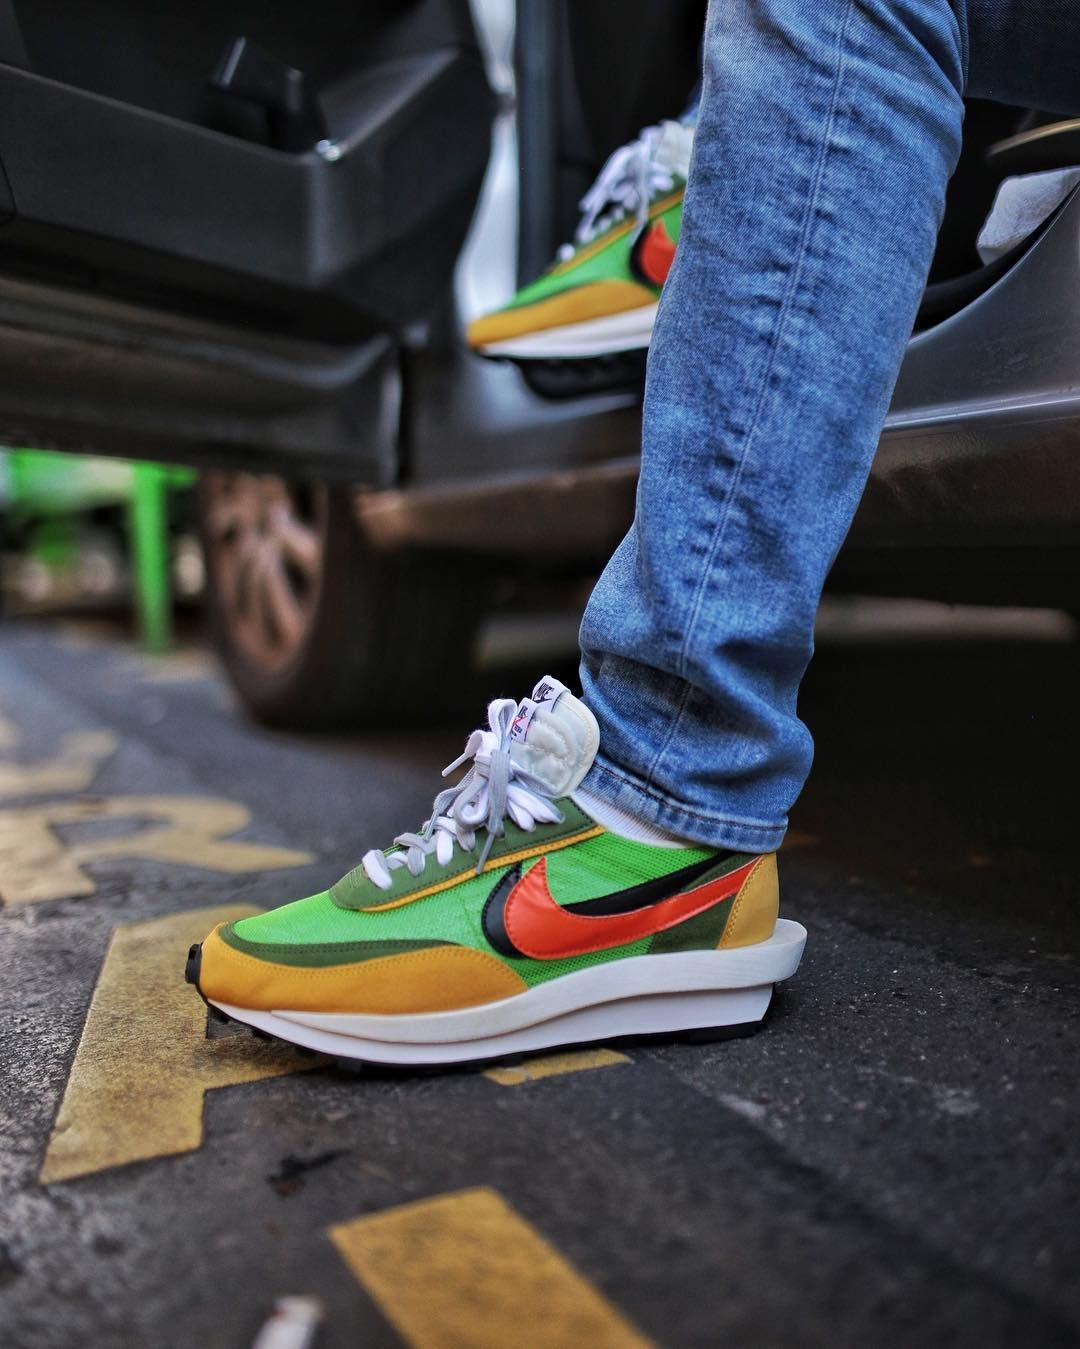 The Sacai X Nike Ldv Waffle Is Dropping This Week Are You Copping By Miaousbarskdale Nikewaffle Sacai Nike Waffle Shoes Sneakers Nike Mens Nike Shoes